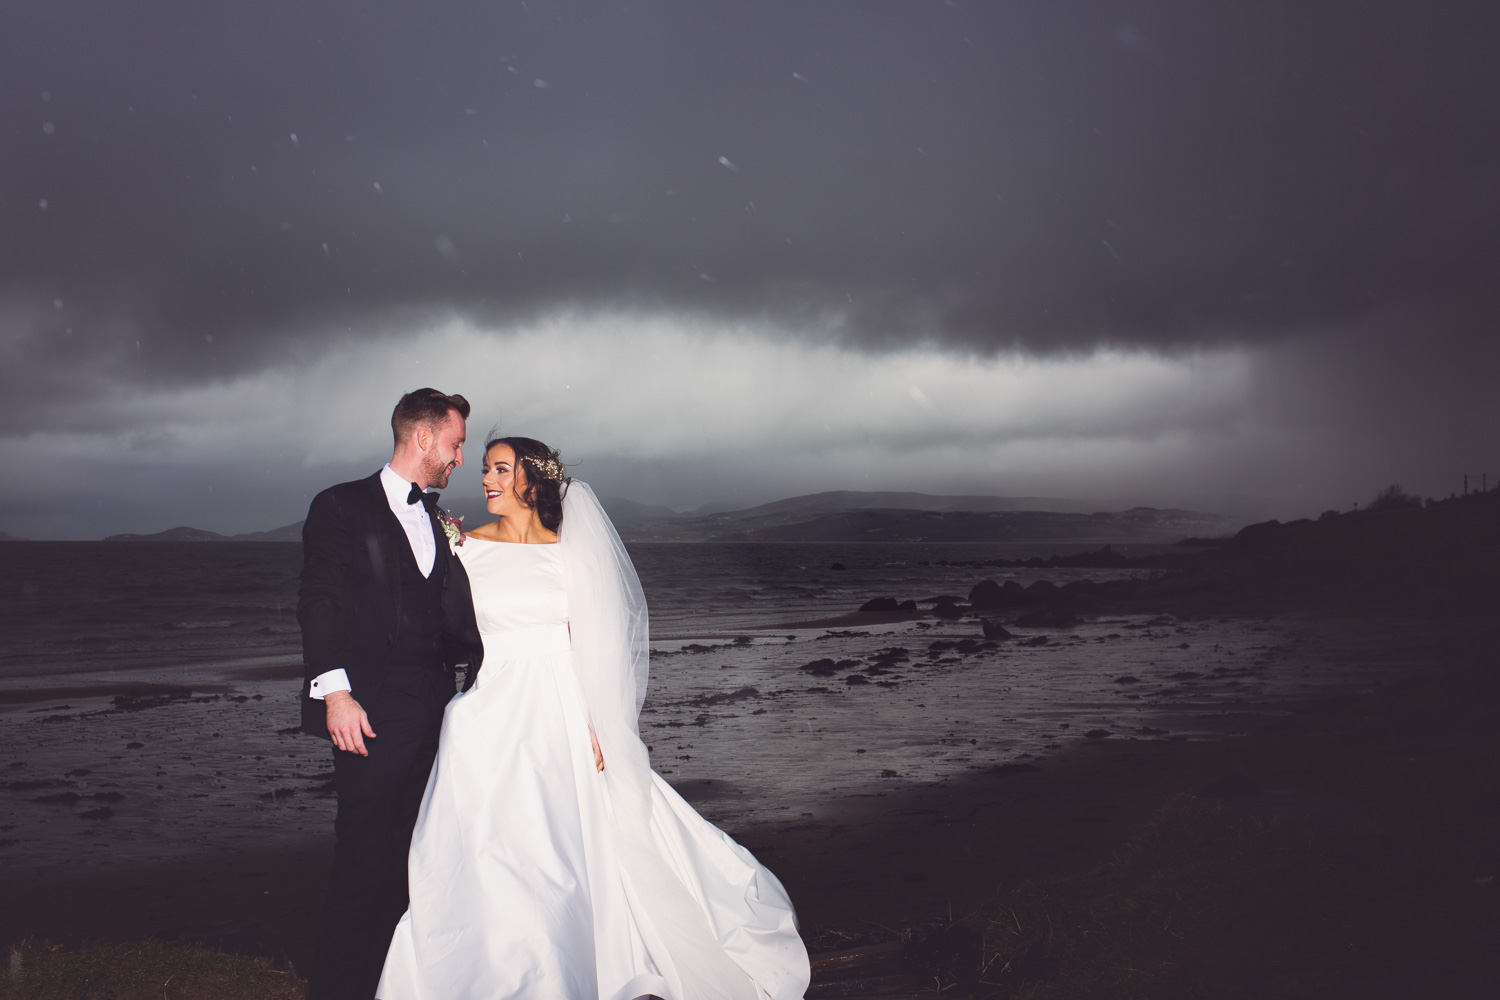 Mark_Barnes_Northern_Ireland_wedding_photographer_Innishowen_Gateway_Donegal_Wedding_photography_Donegal_wedding_photographer-40.jpg